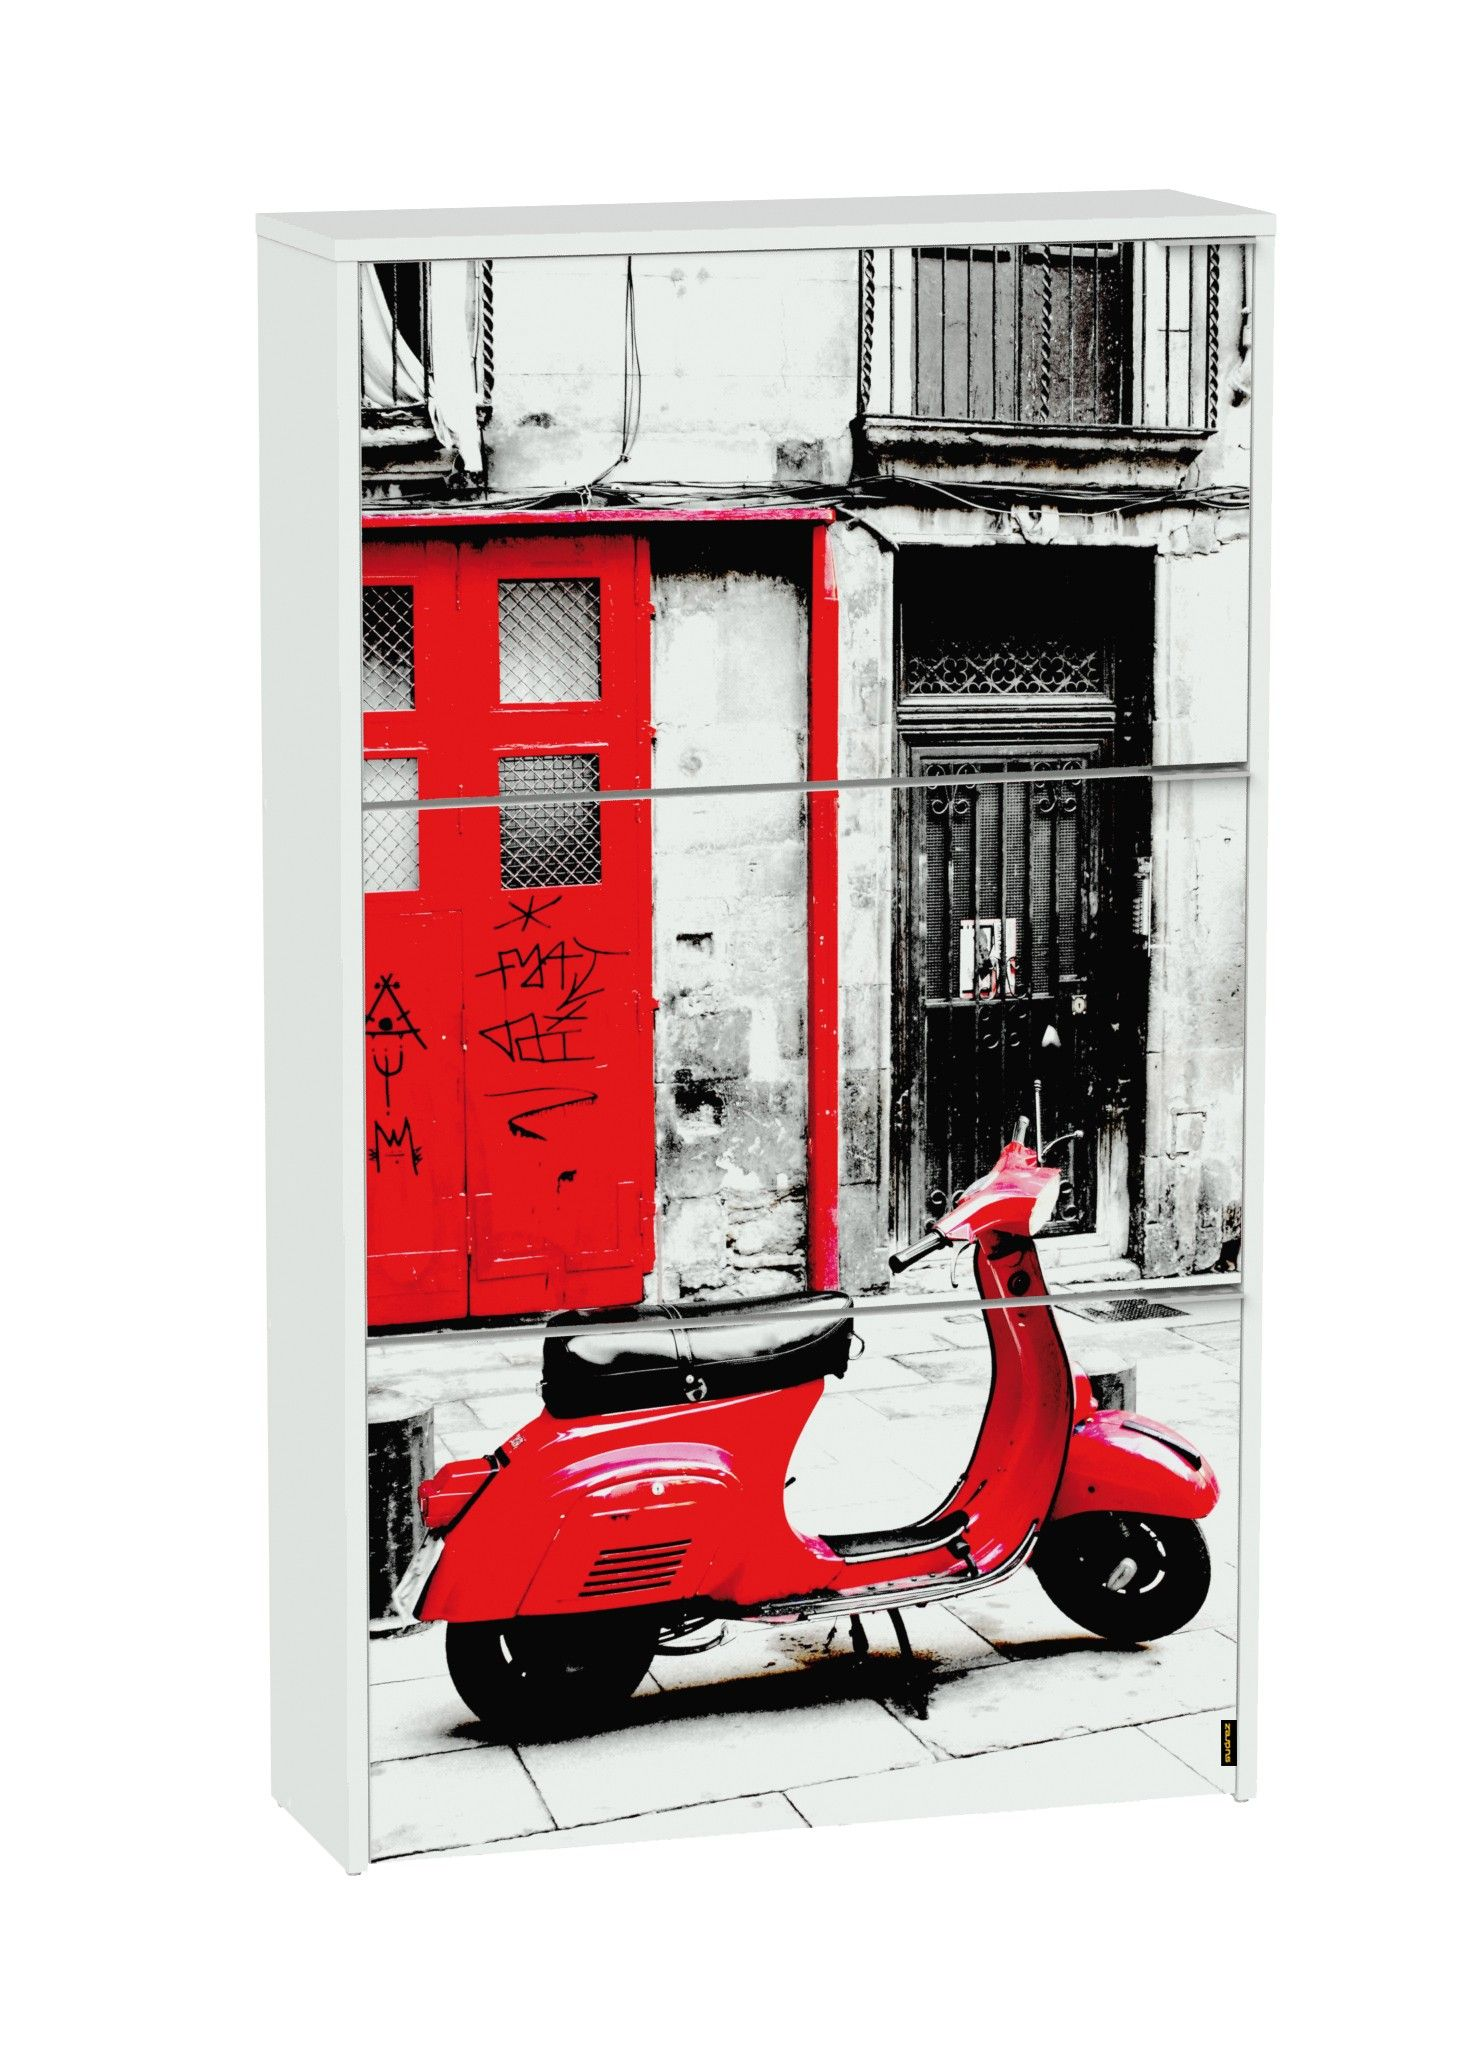 Muebles Zapateros En Conforama Zapatero 3t Red Vespa En Conforama For Home Pinterest Locker